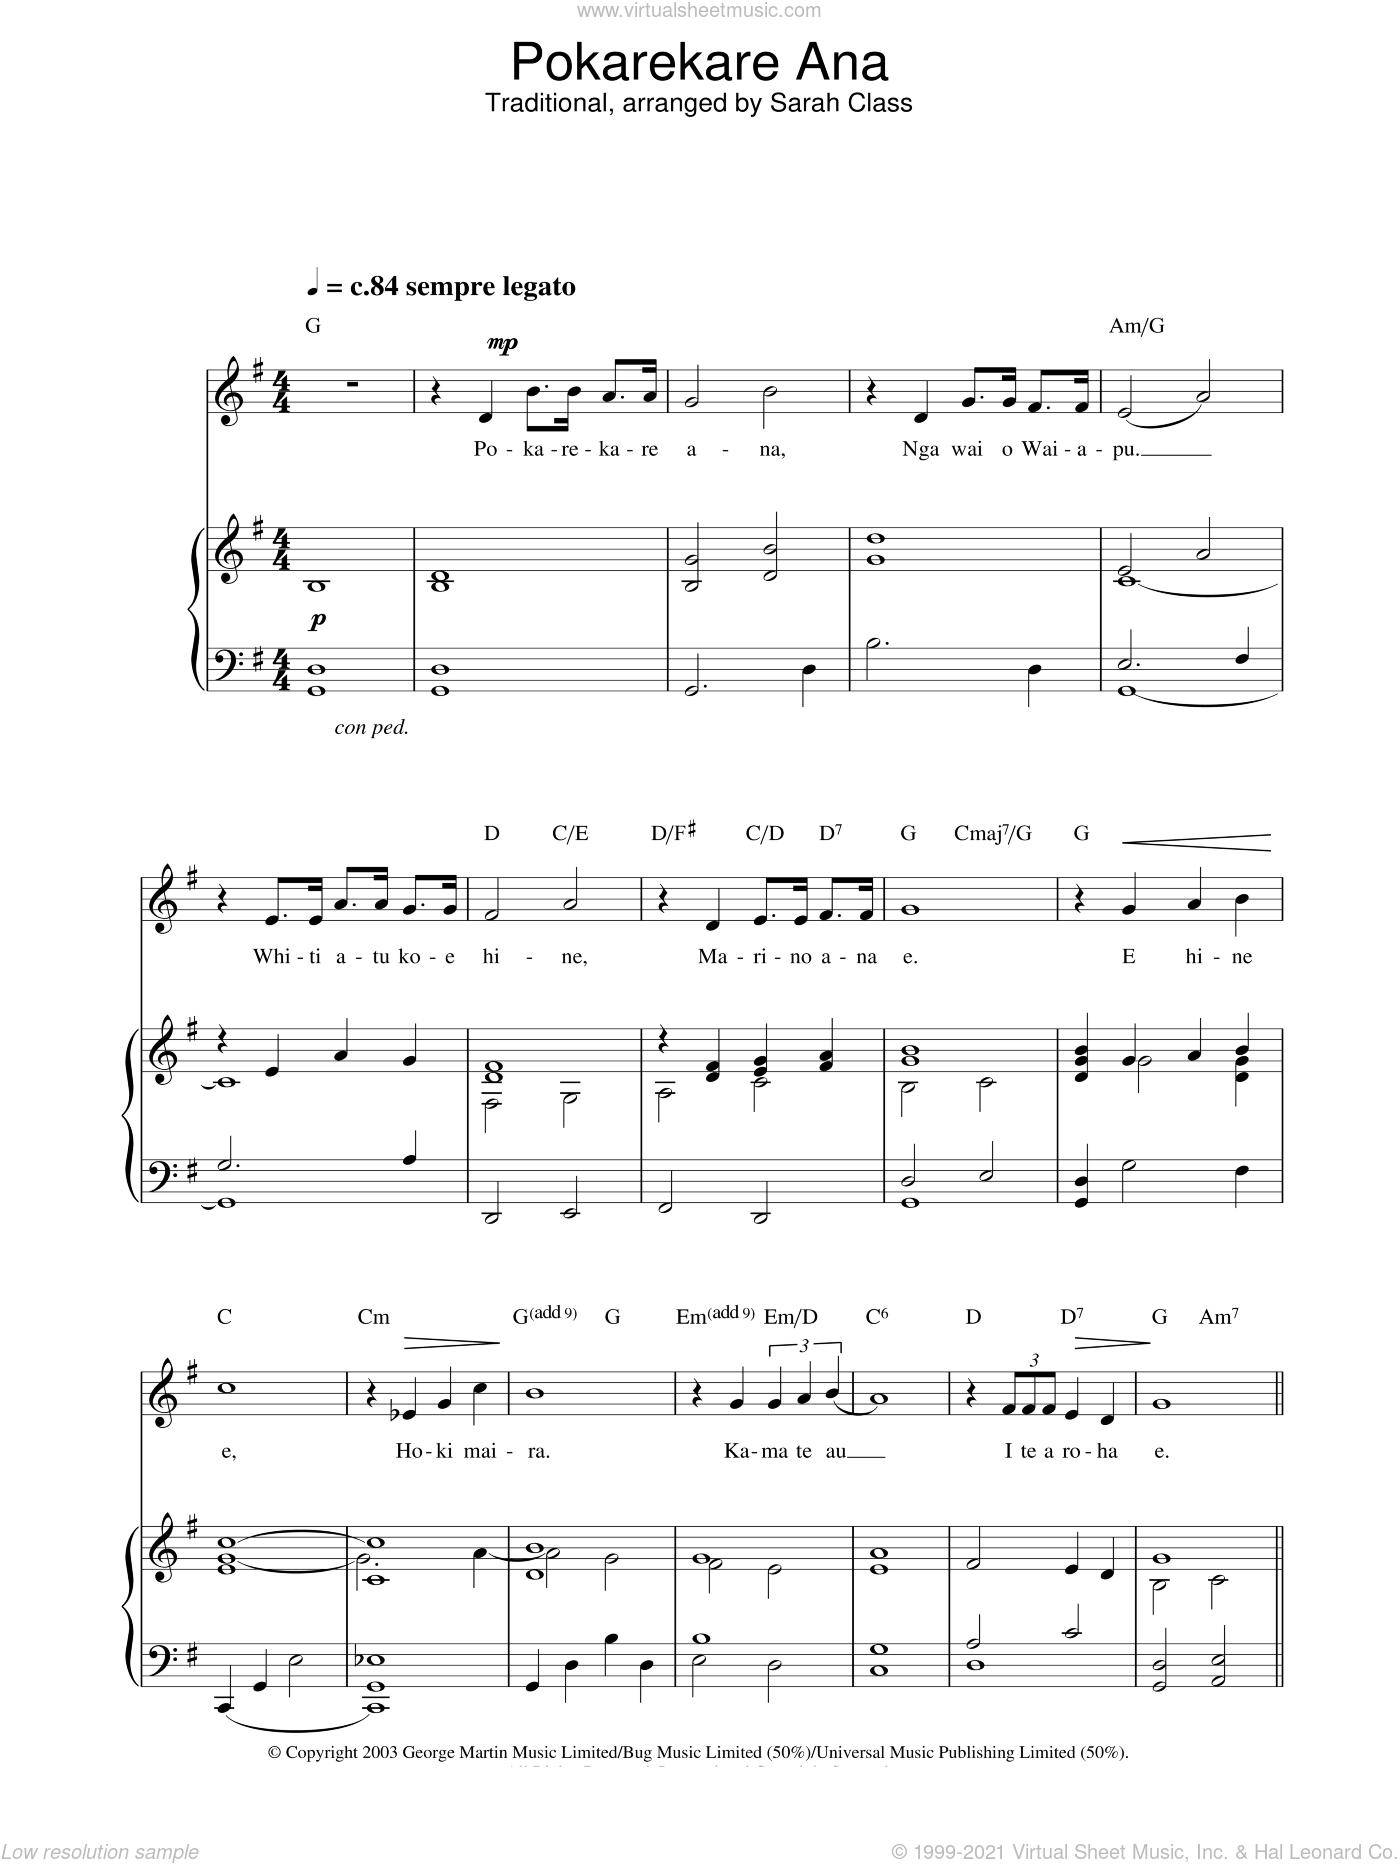 Pokarekare Ana sheet music for voice, piano or guitar by Hayley Westenra